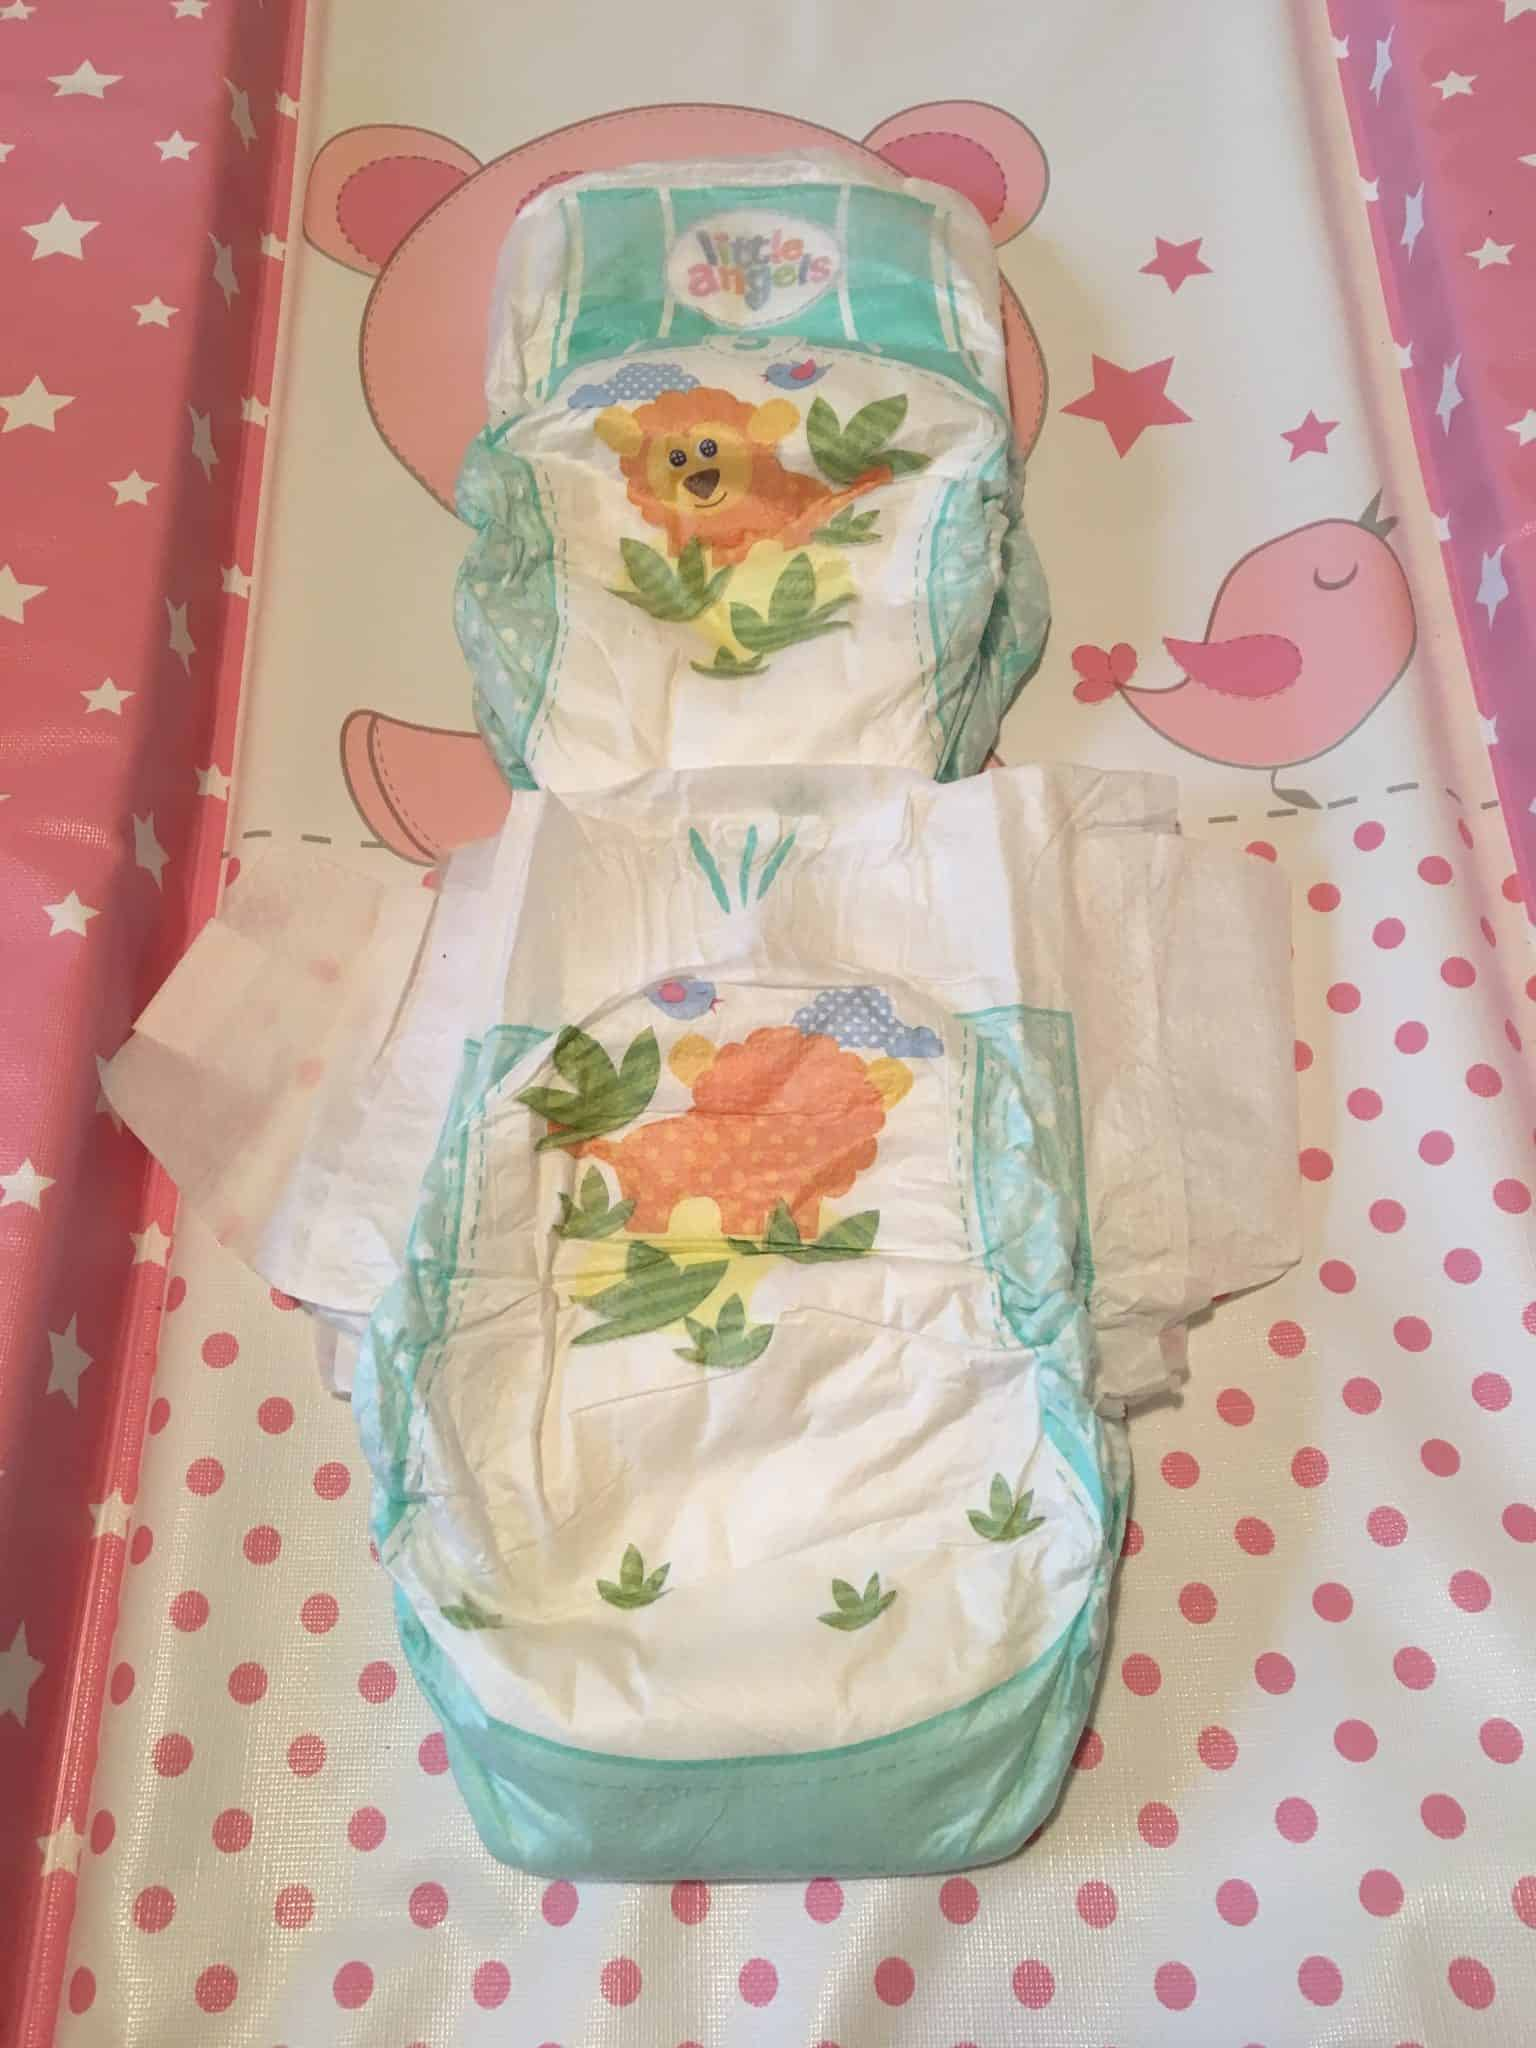 Comfort & Protect Nappies from Asda